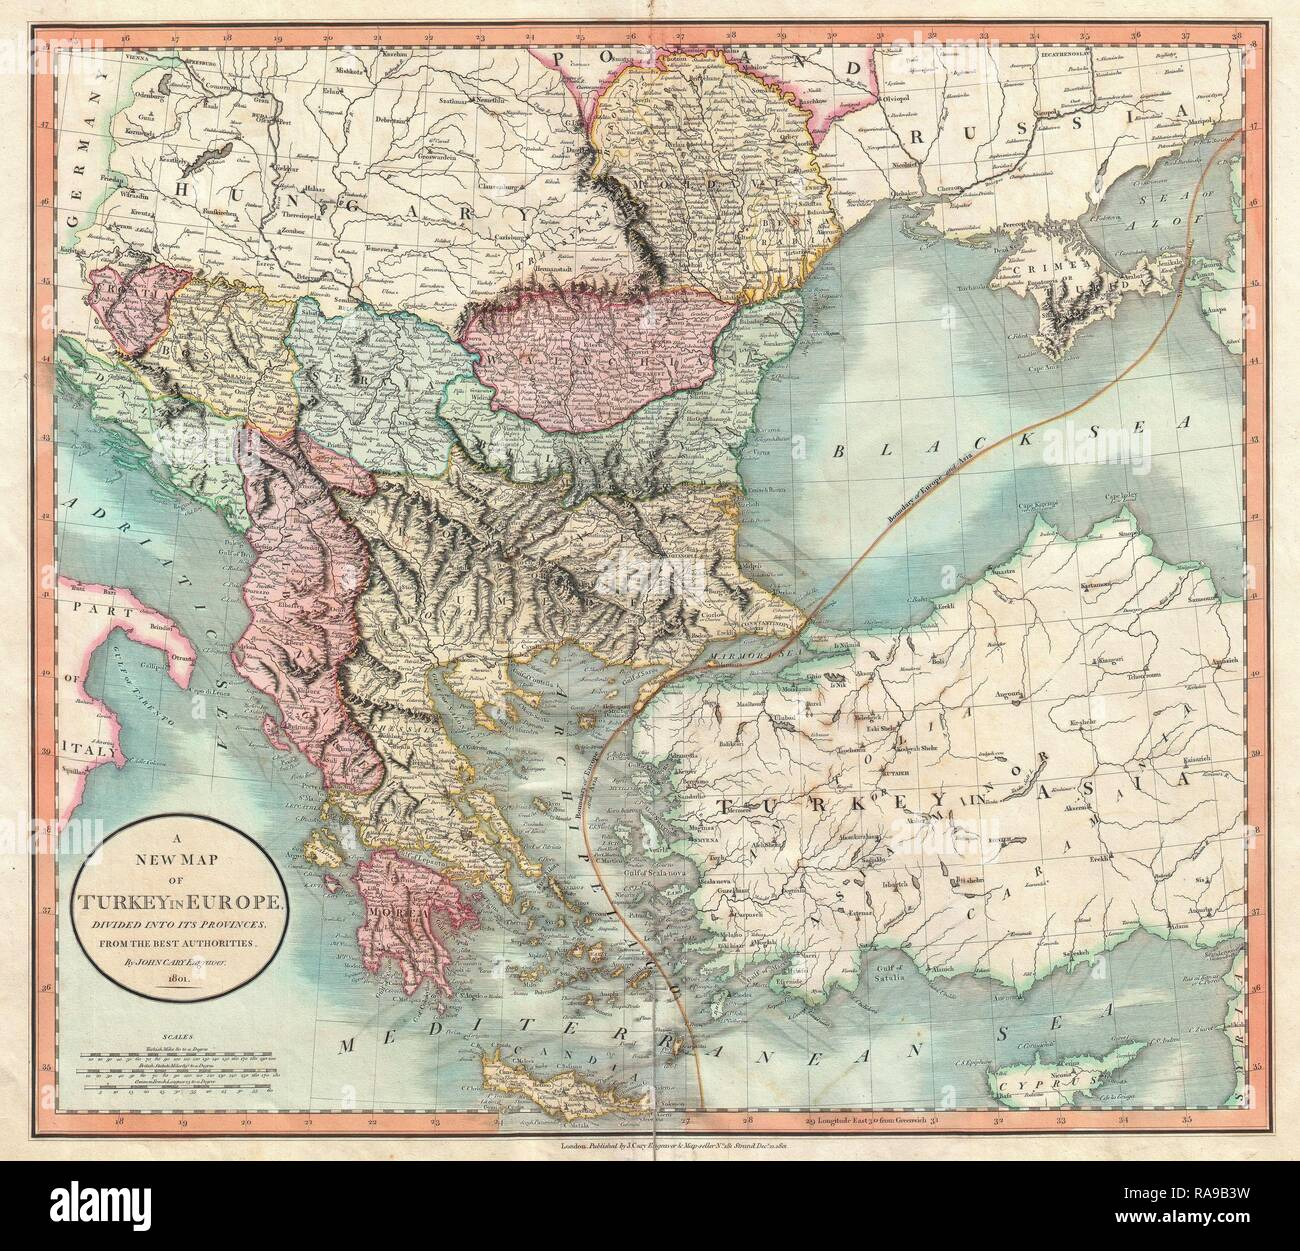 1801 Cary Map Of Turkey In Europe Greece And The Balkan